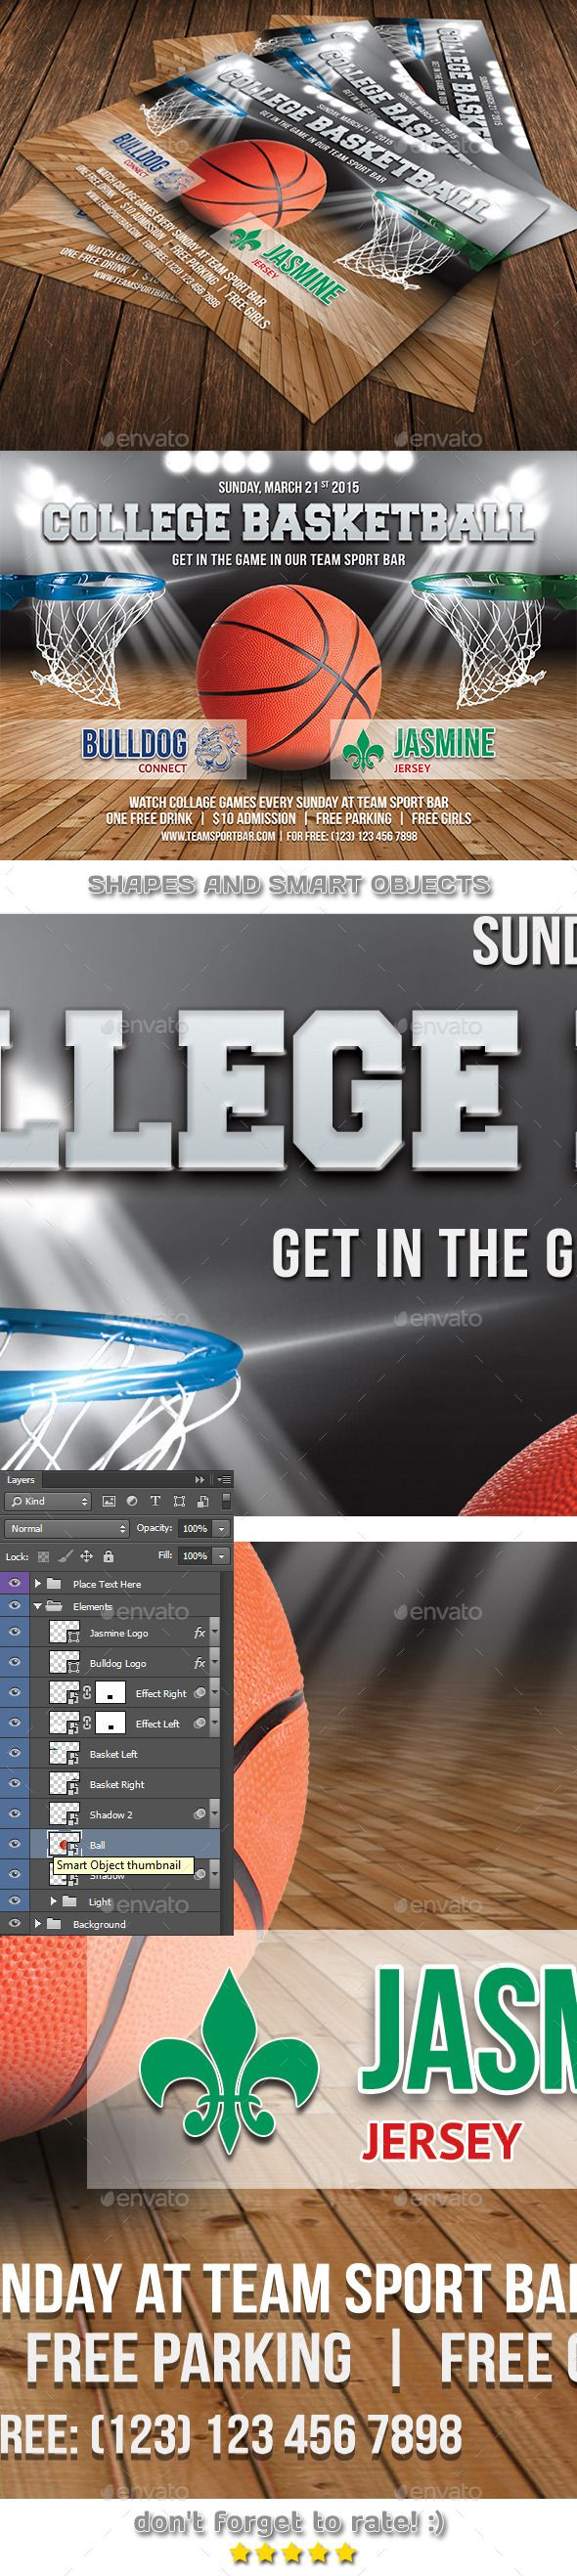 College Basketball Game Flyer Template 62 by 21min -